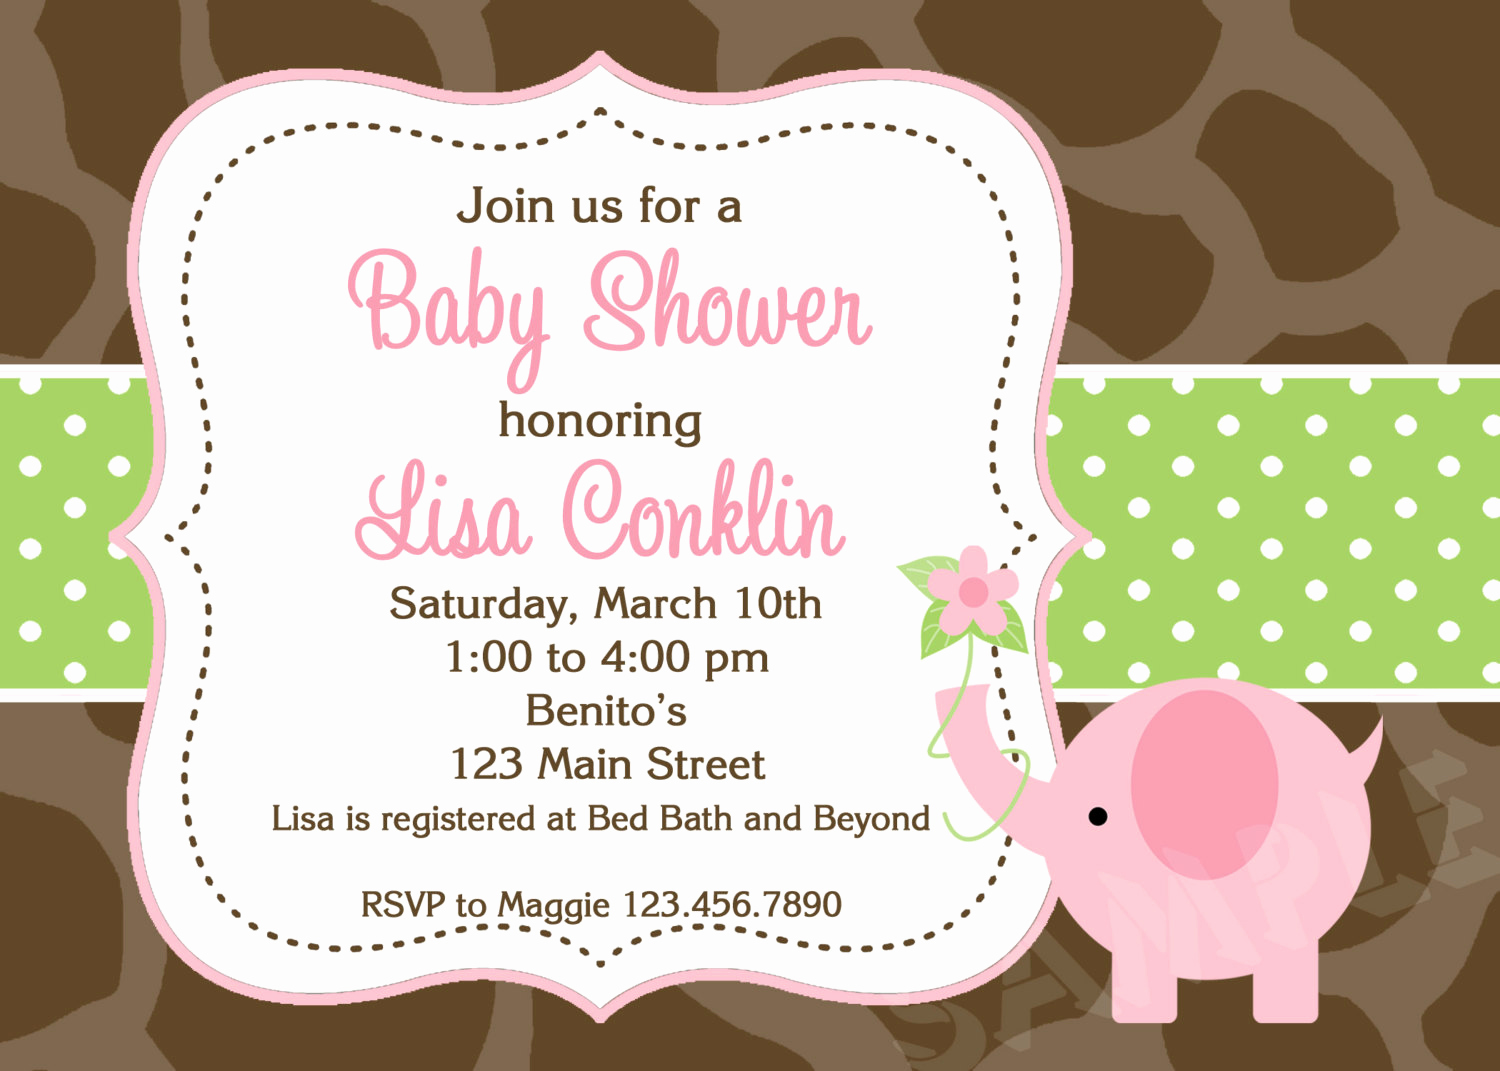 Baby Shower Invitation Pictures Unique Couples Baby Shower Invitations Pink and Gray Elephant